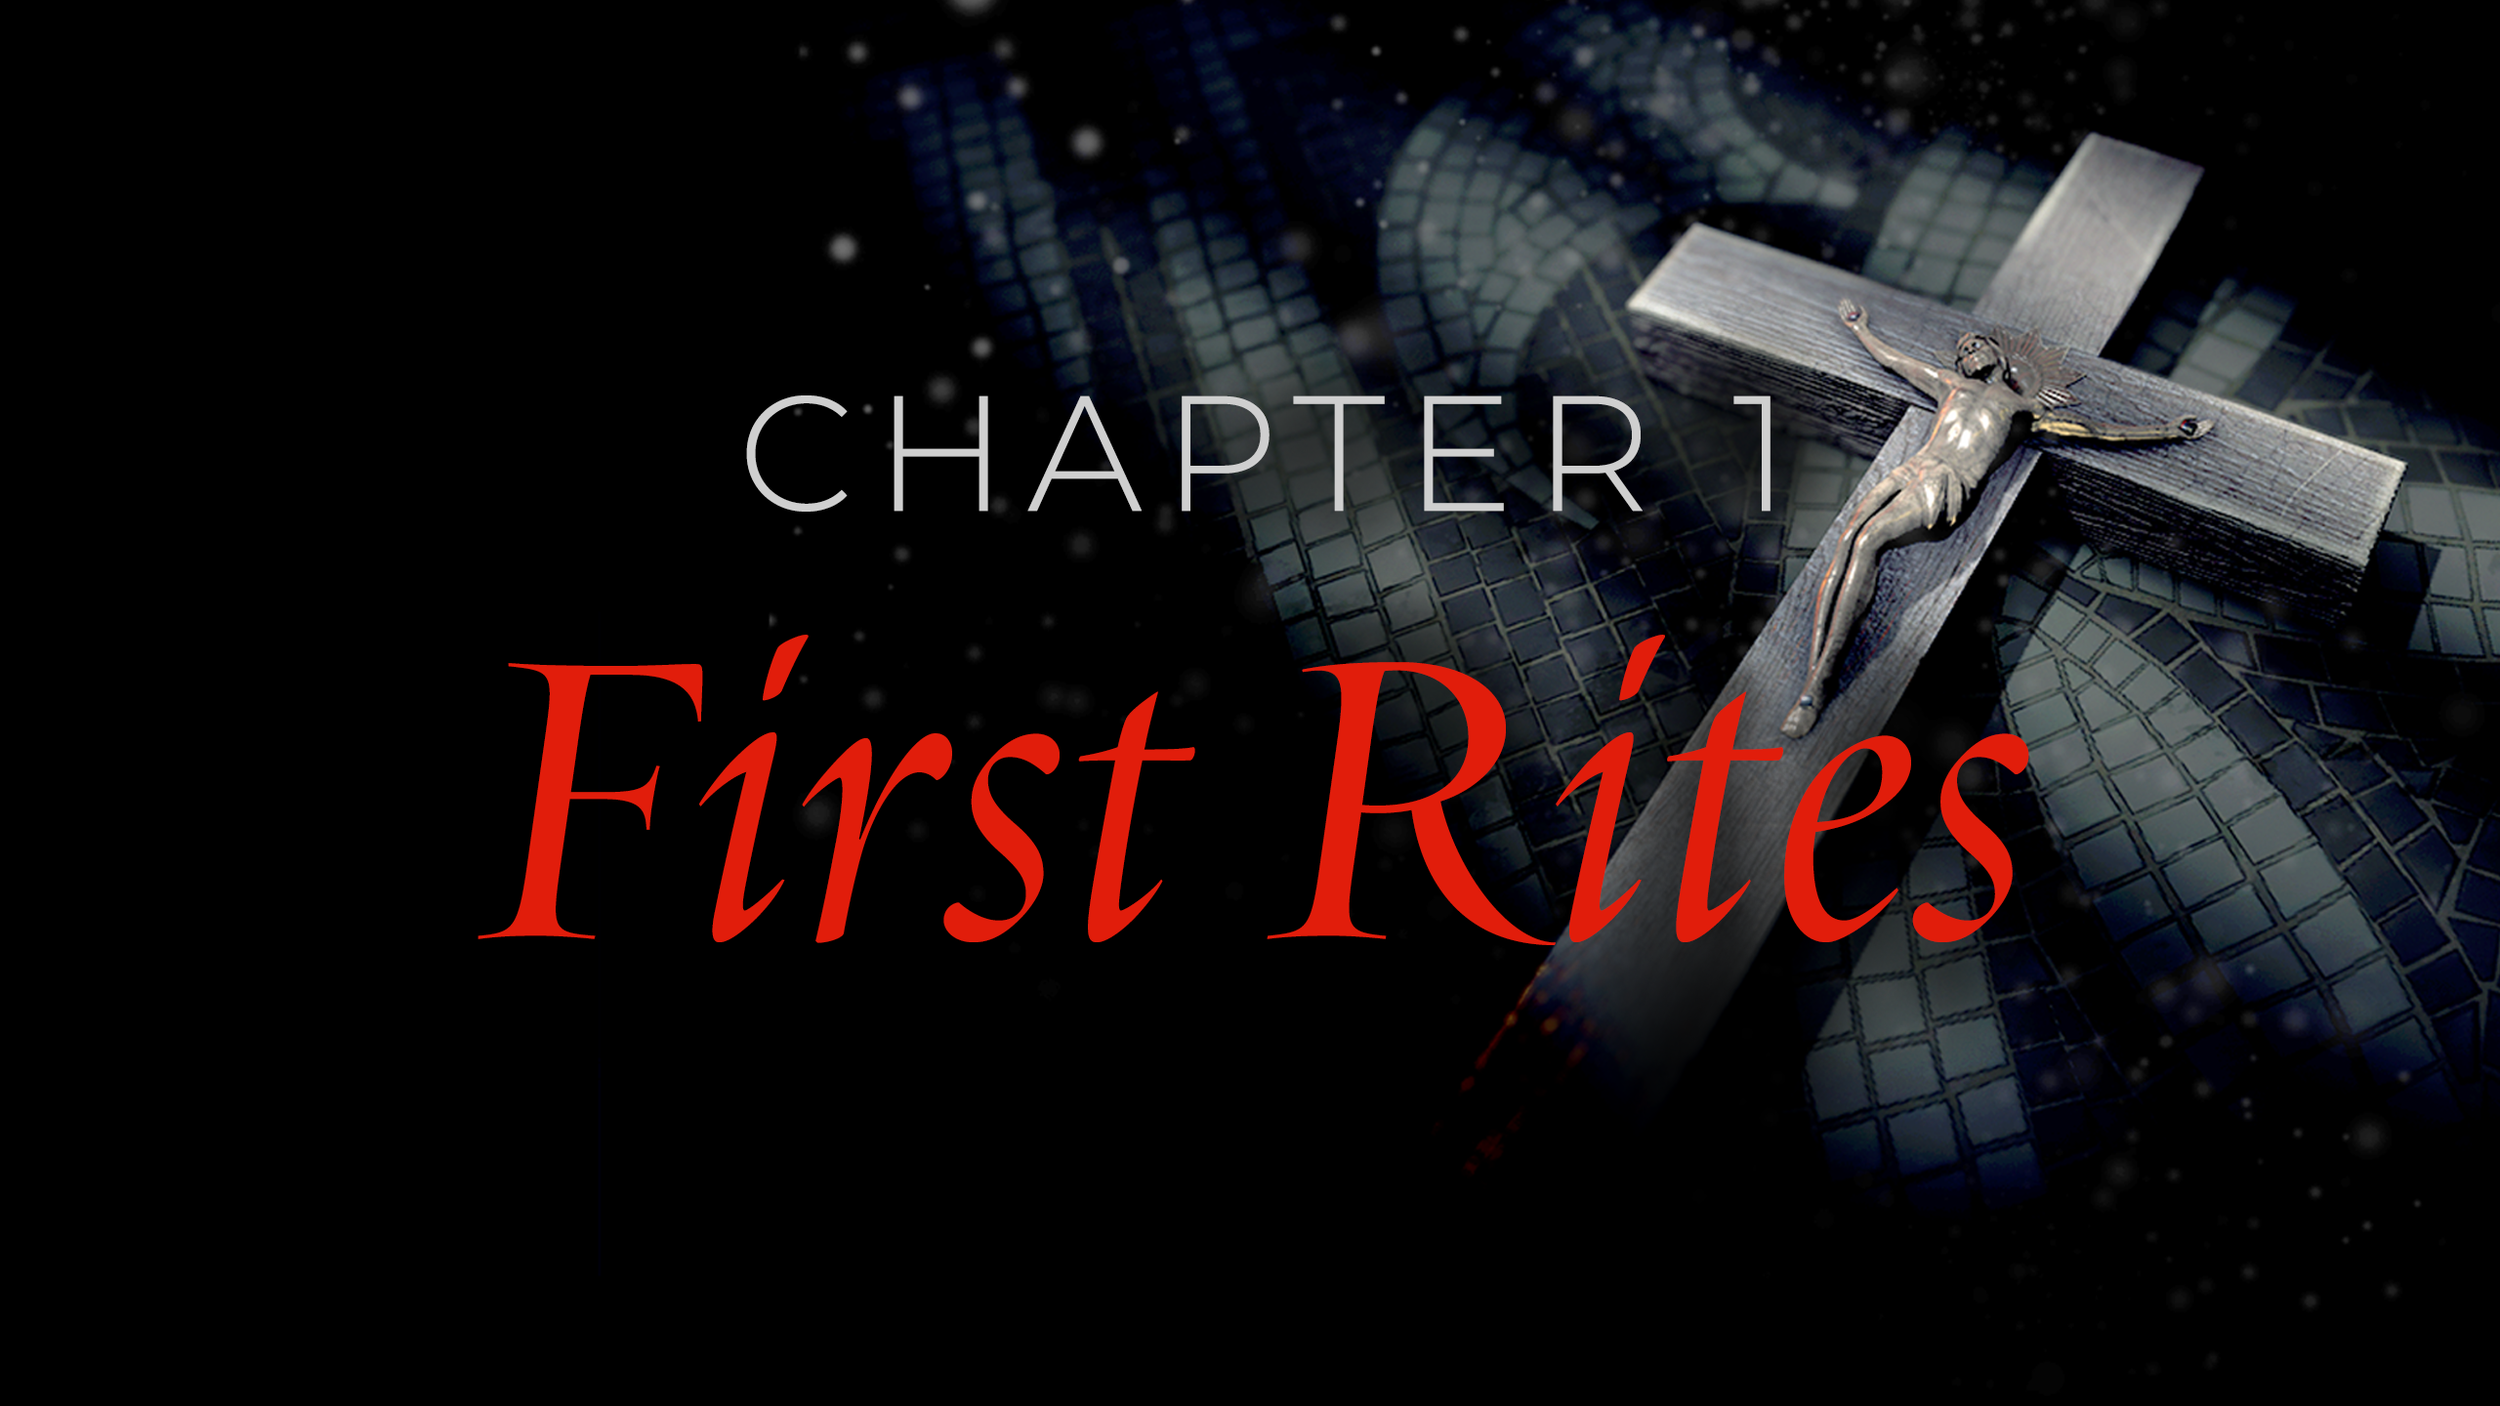 chap1_first.png